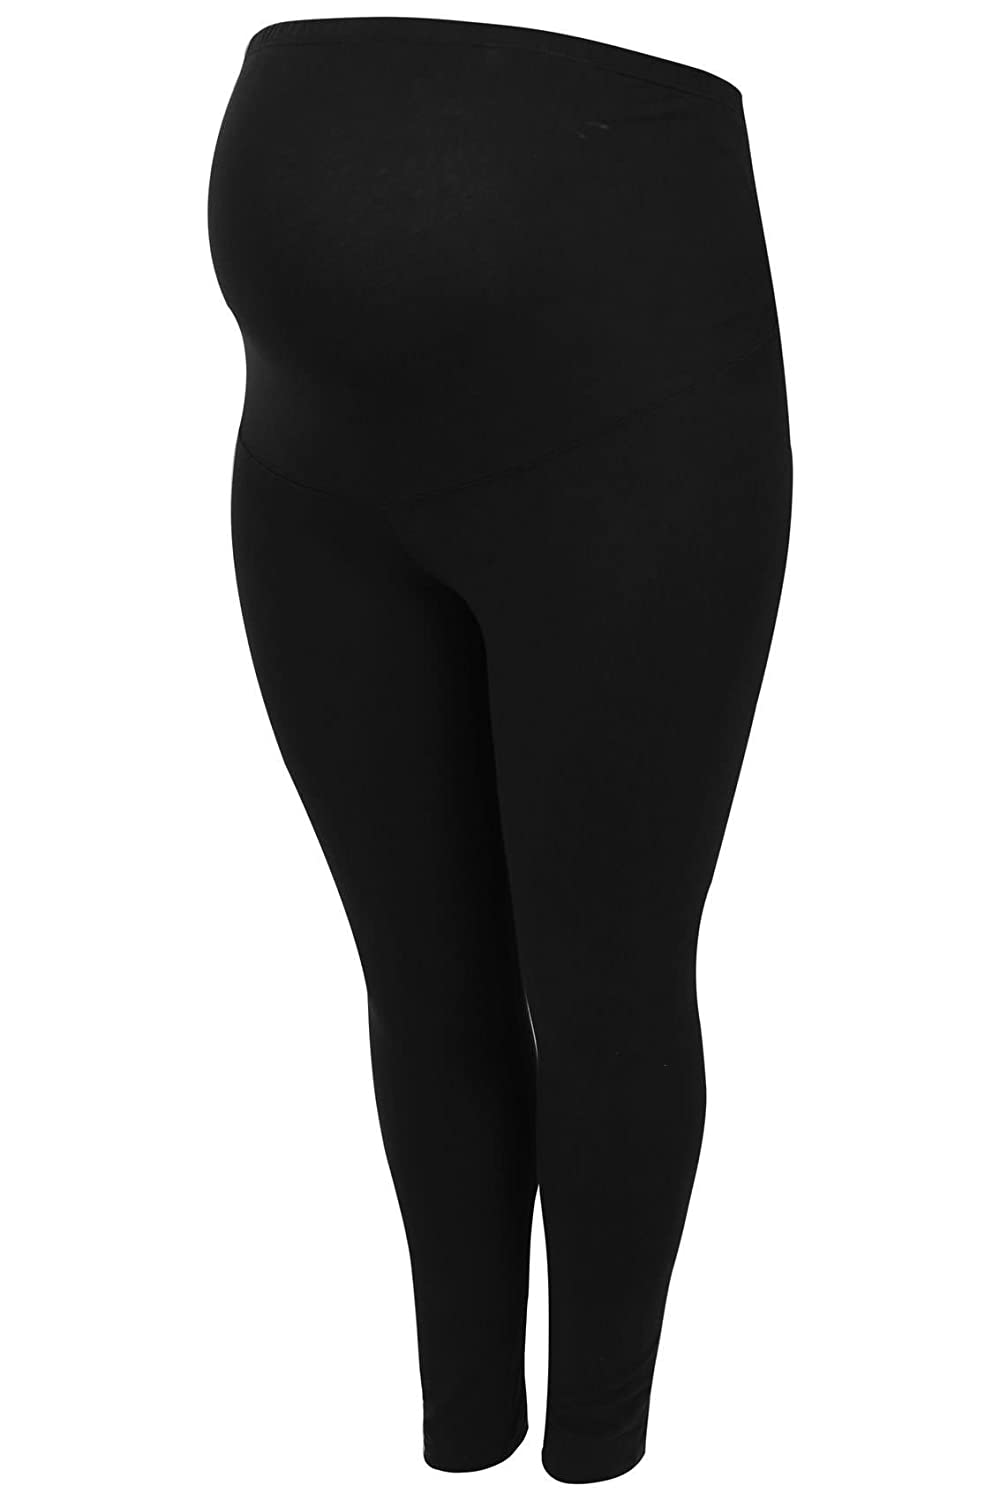 Women's Plus Size Bump It up Maternity Soft Touch Leggings with Tummy Control Pa